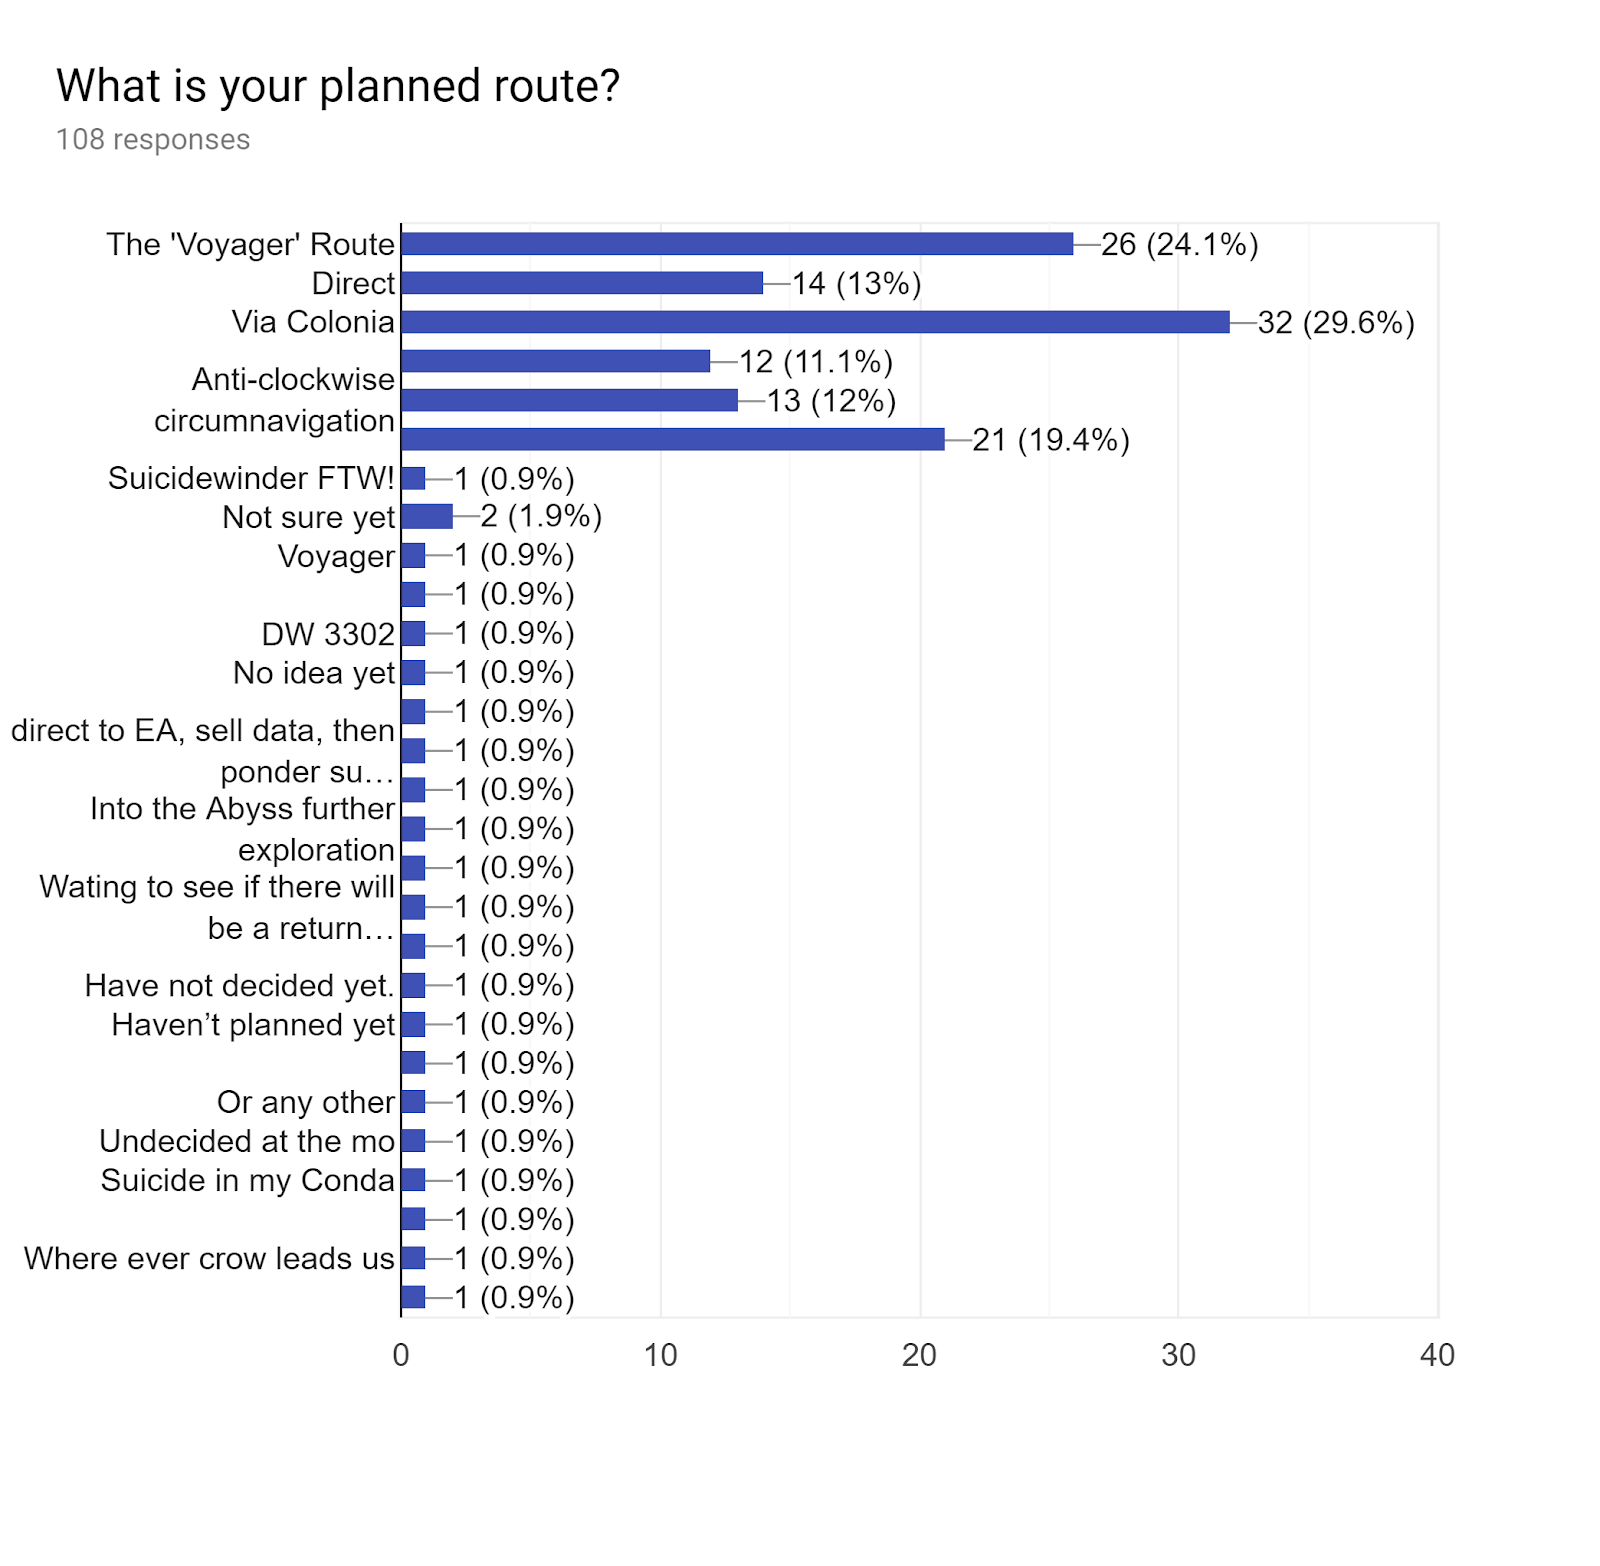 Forms response chart. Question title: What is your planned route?. Number of responses: 108 responses.